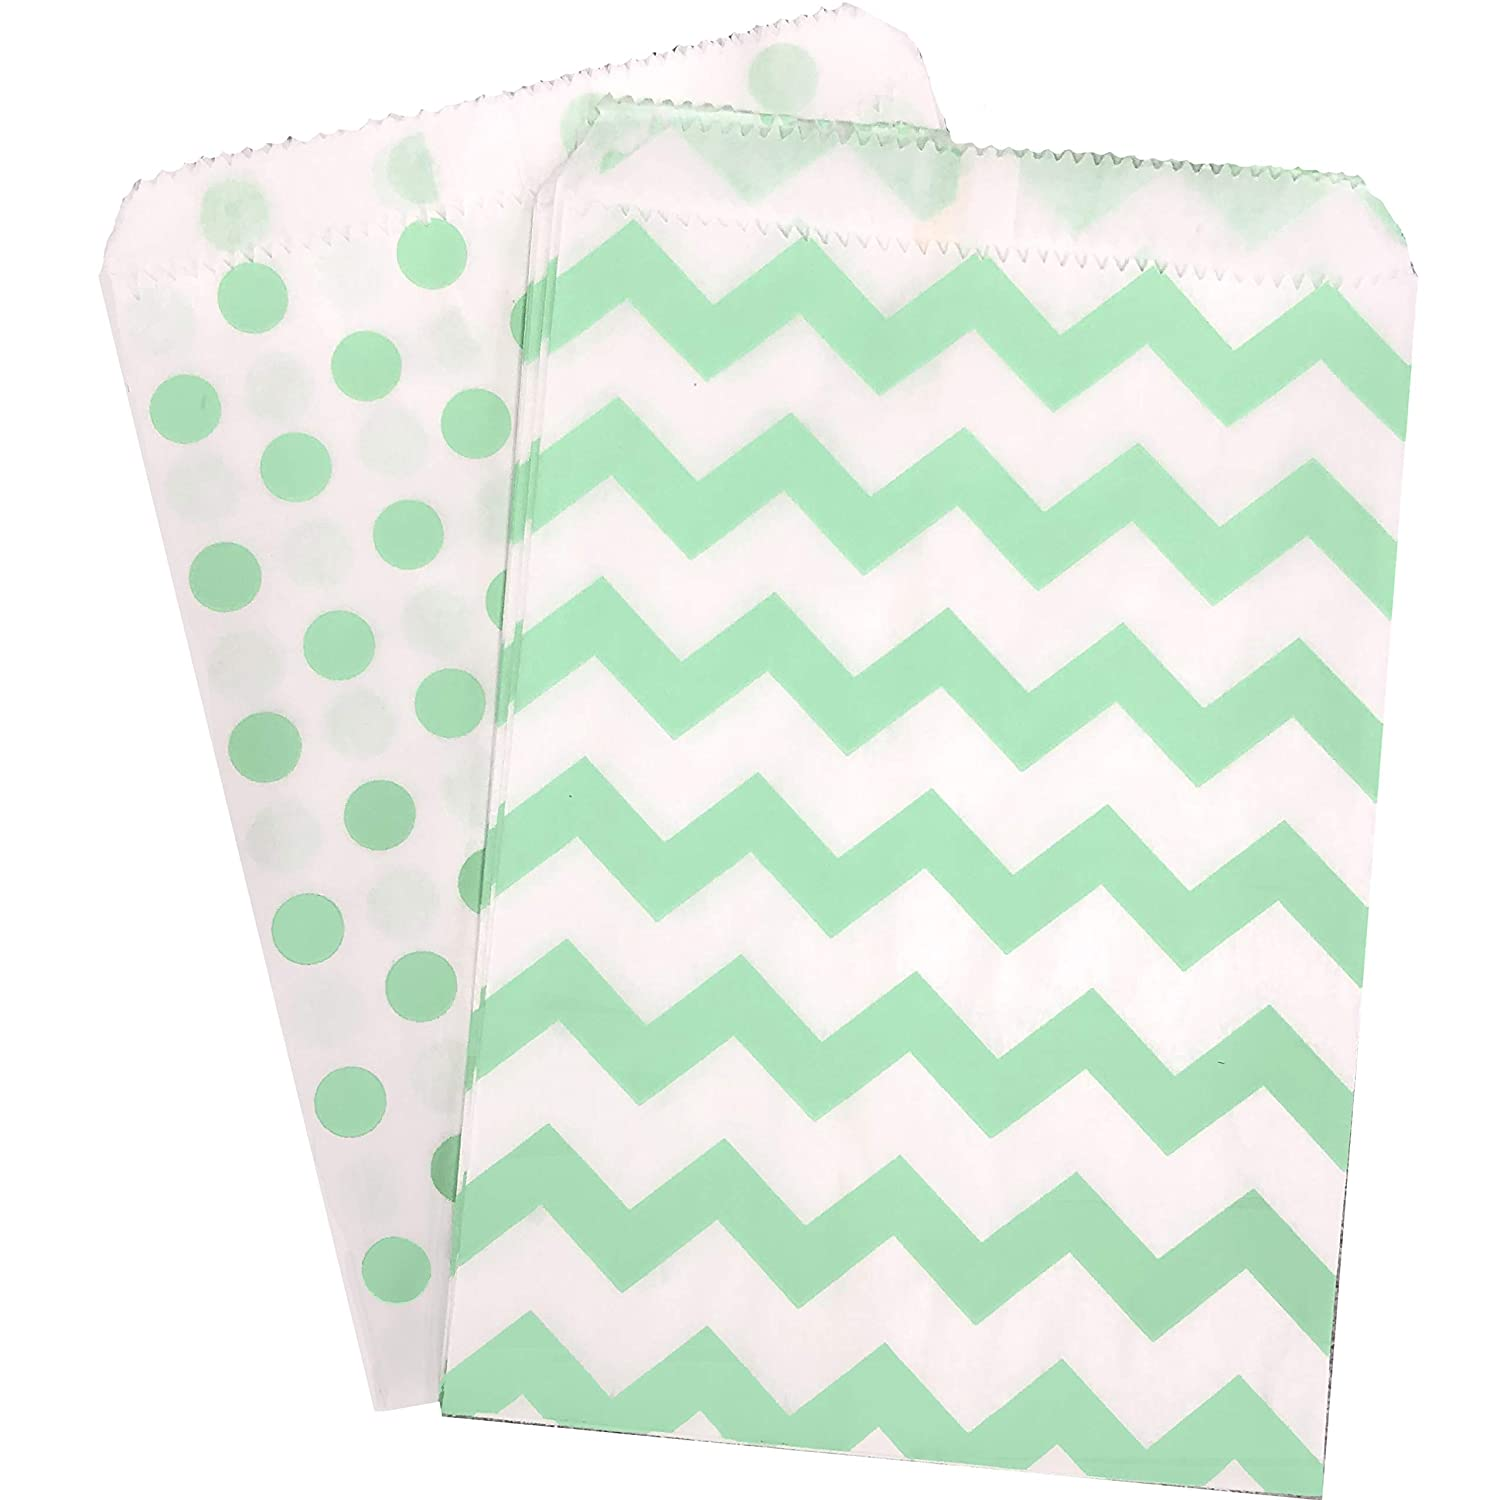 Mint Green and White Paper Treat Sacks - Chevron Polka Dot Favor Bags - 5.5 x 7.5 Inches - 48 Pack